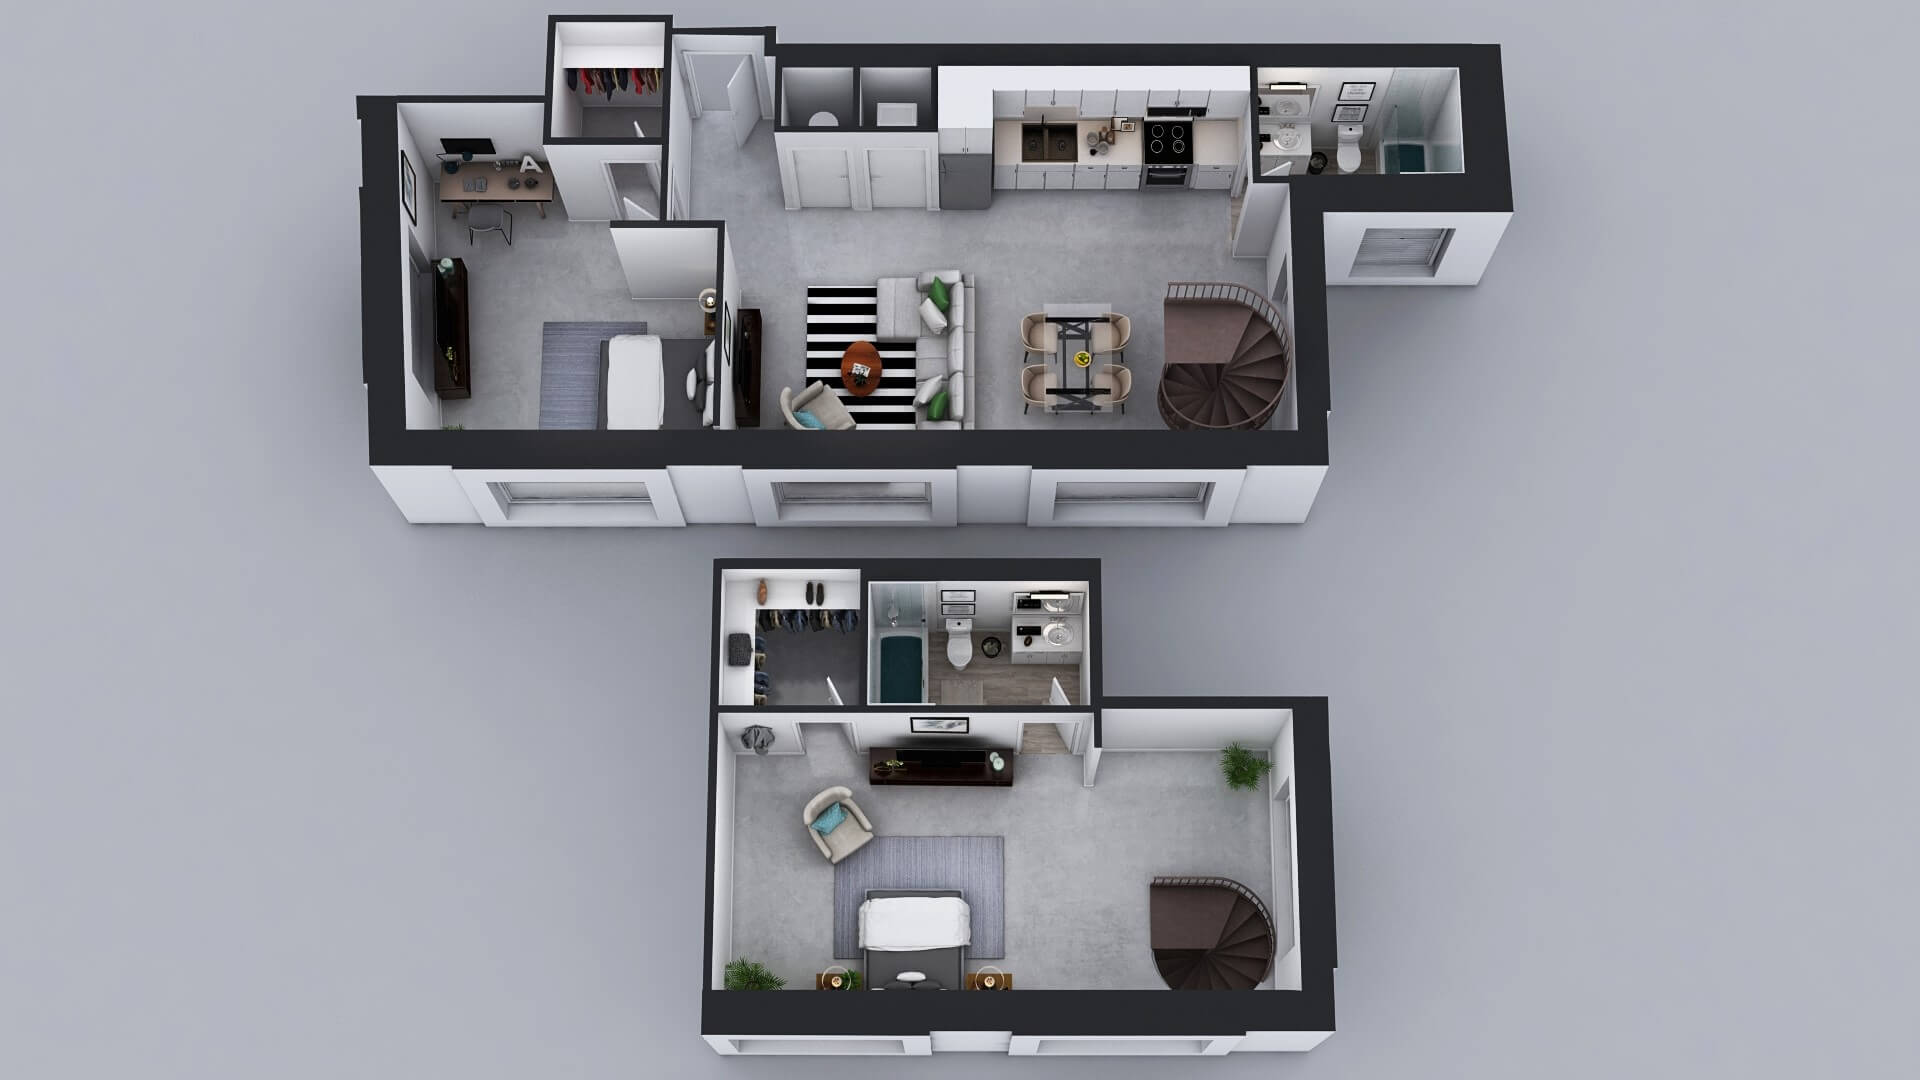 B13 Floor Plan - 2 Bed 2 Bath Penthouse